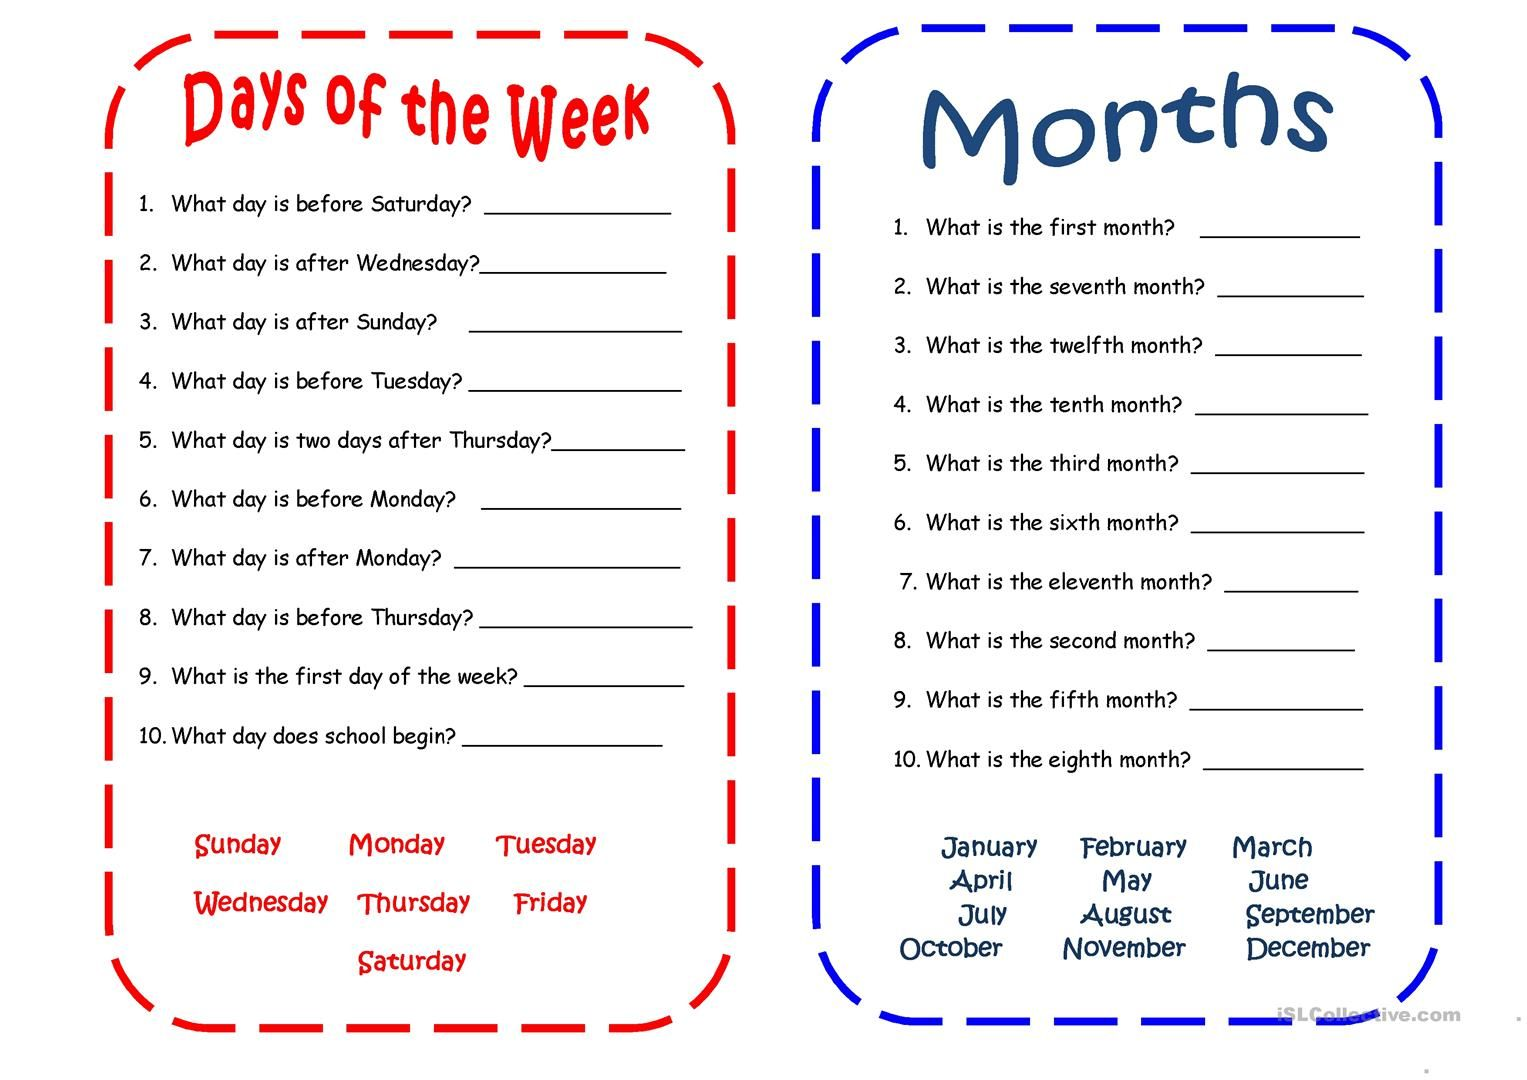 medium resolution of Days and Months worksheet - Free ESL printable worksheets made by teachers    English worksheets for kids